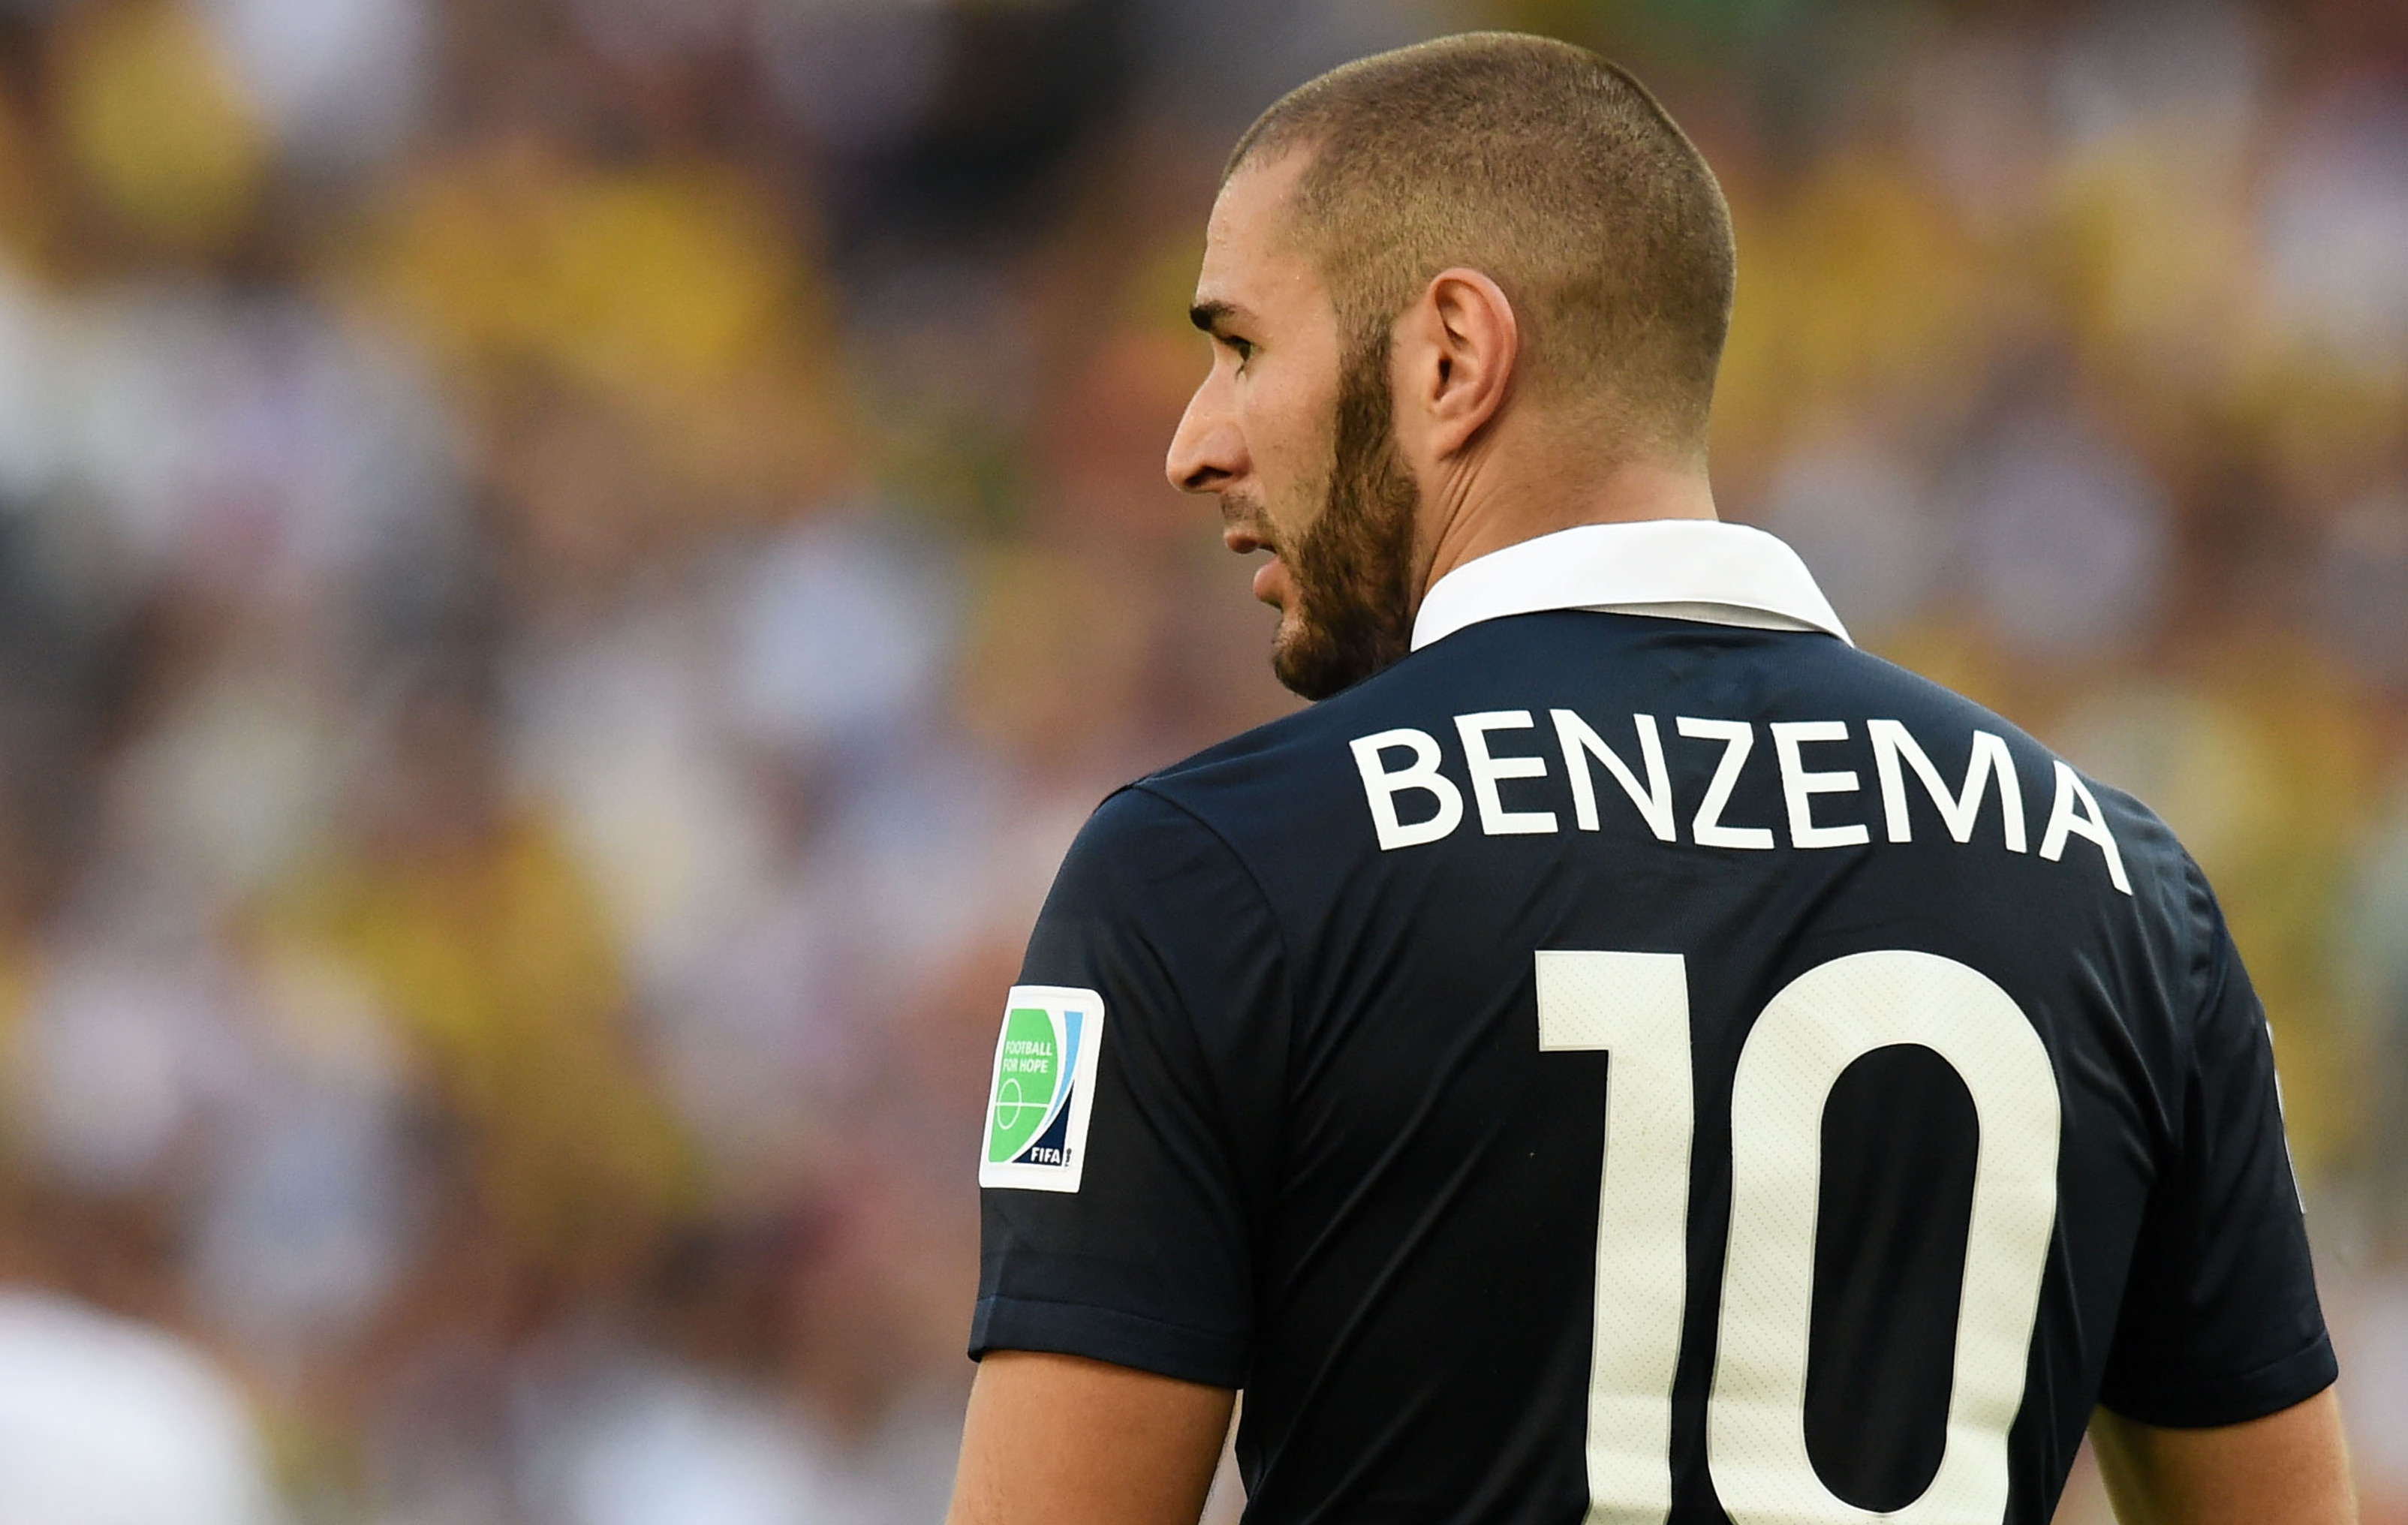 comment benzema peut il tre le meilleur joueur de la coupe du monde equipe de france 2014. Black Bedroom Furniture Sets. Home Design Ideas